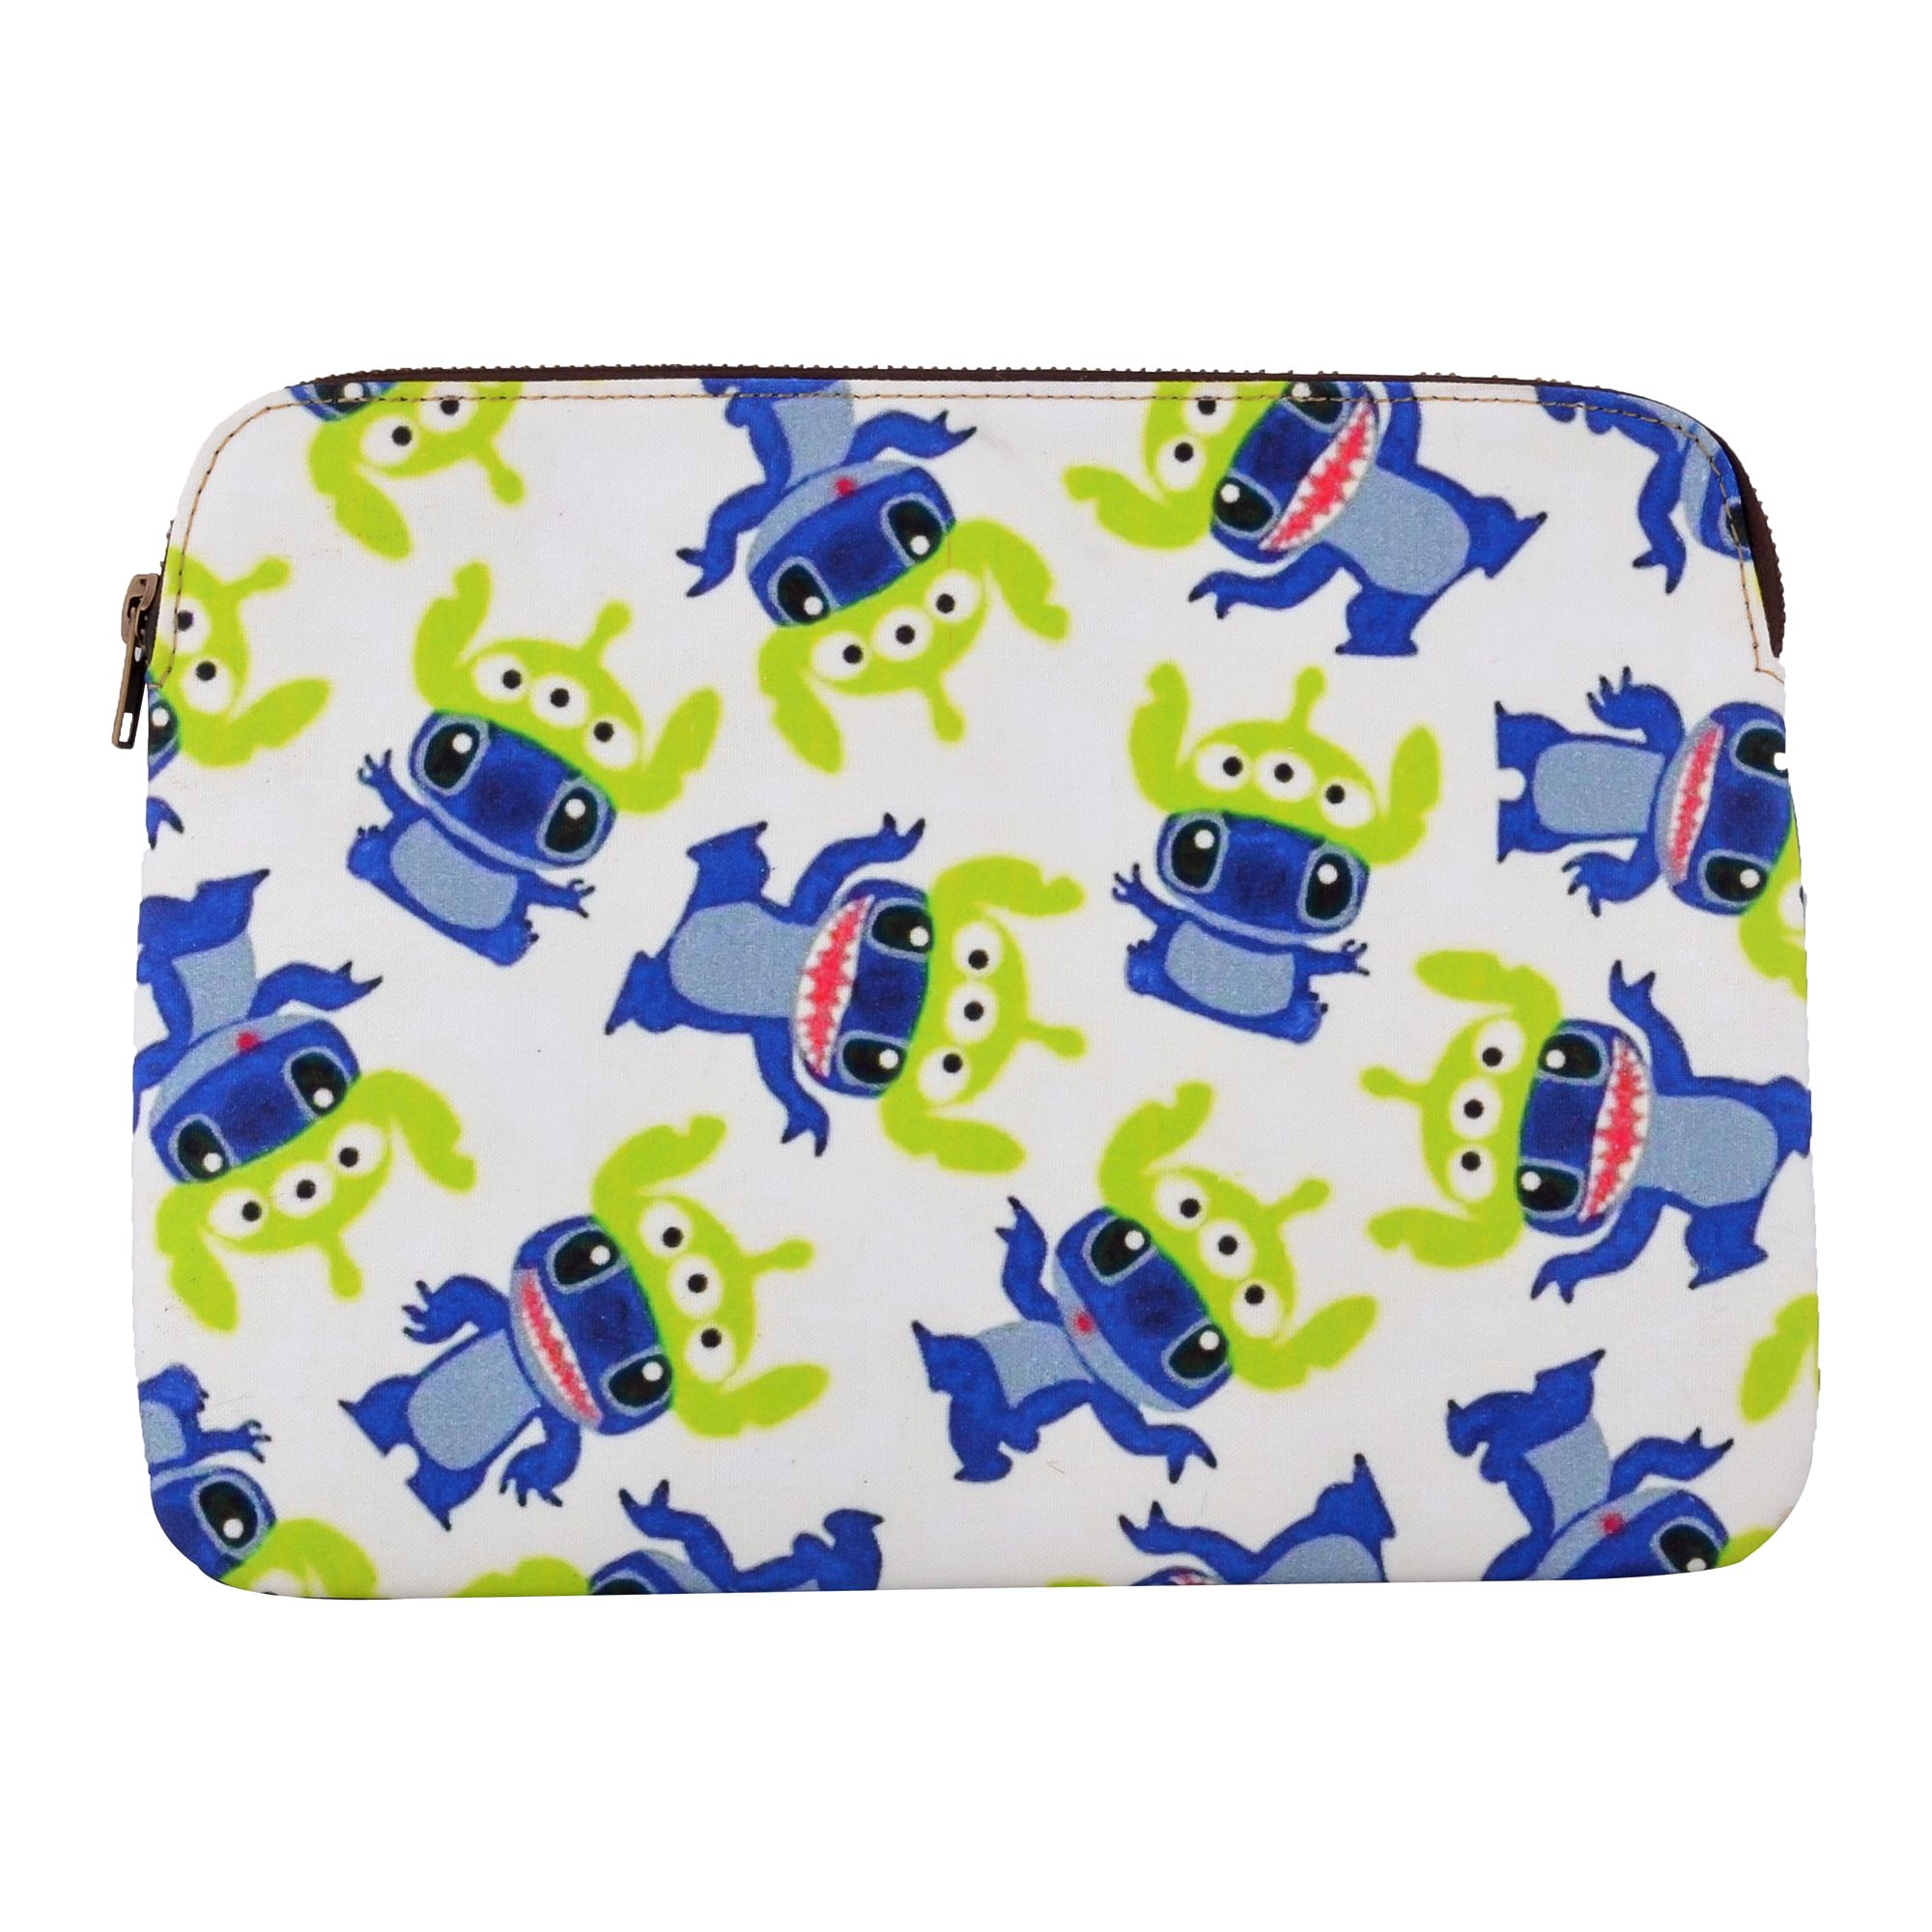 Cartoons Multipurpose/ Make Up Pouch